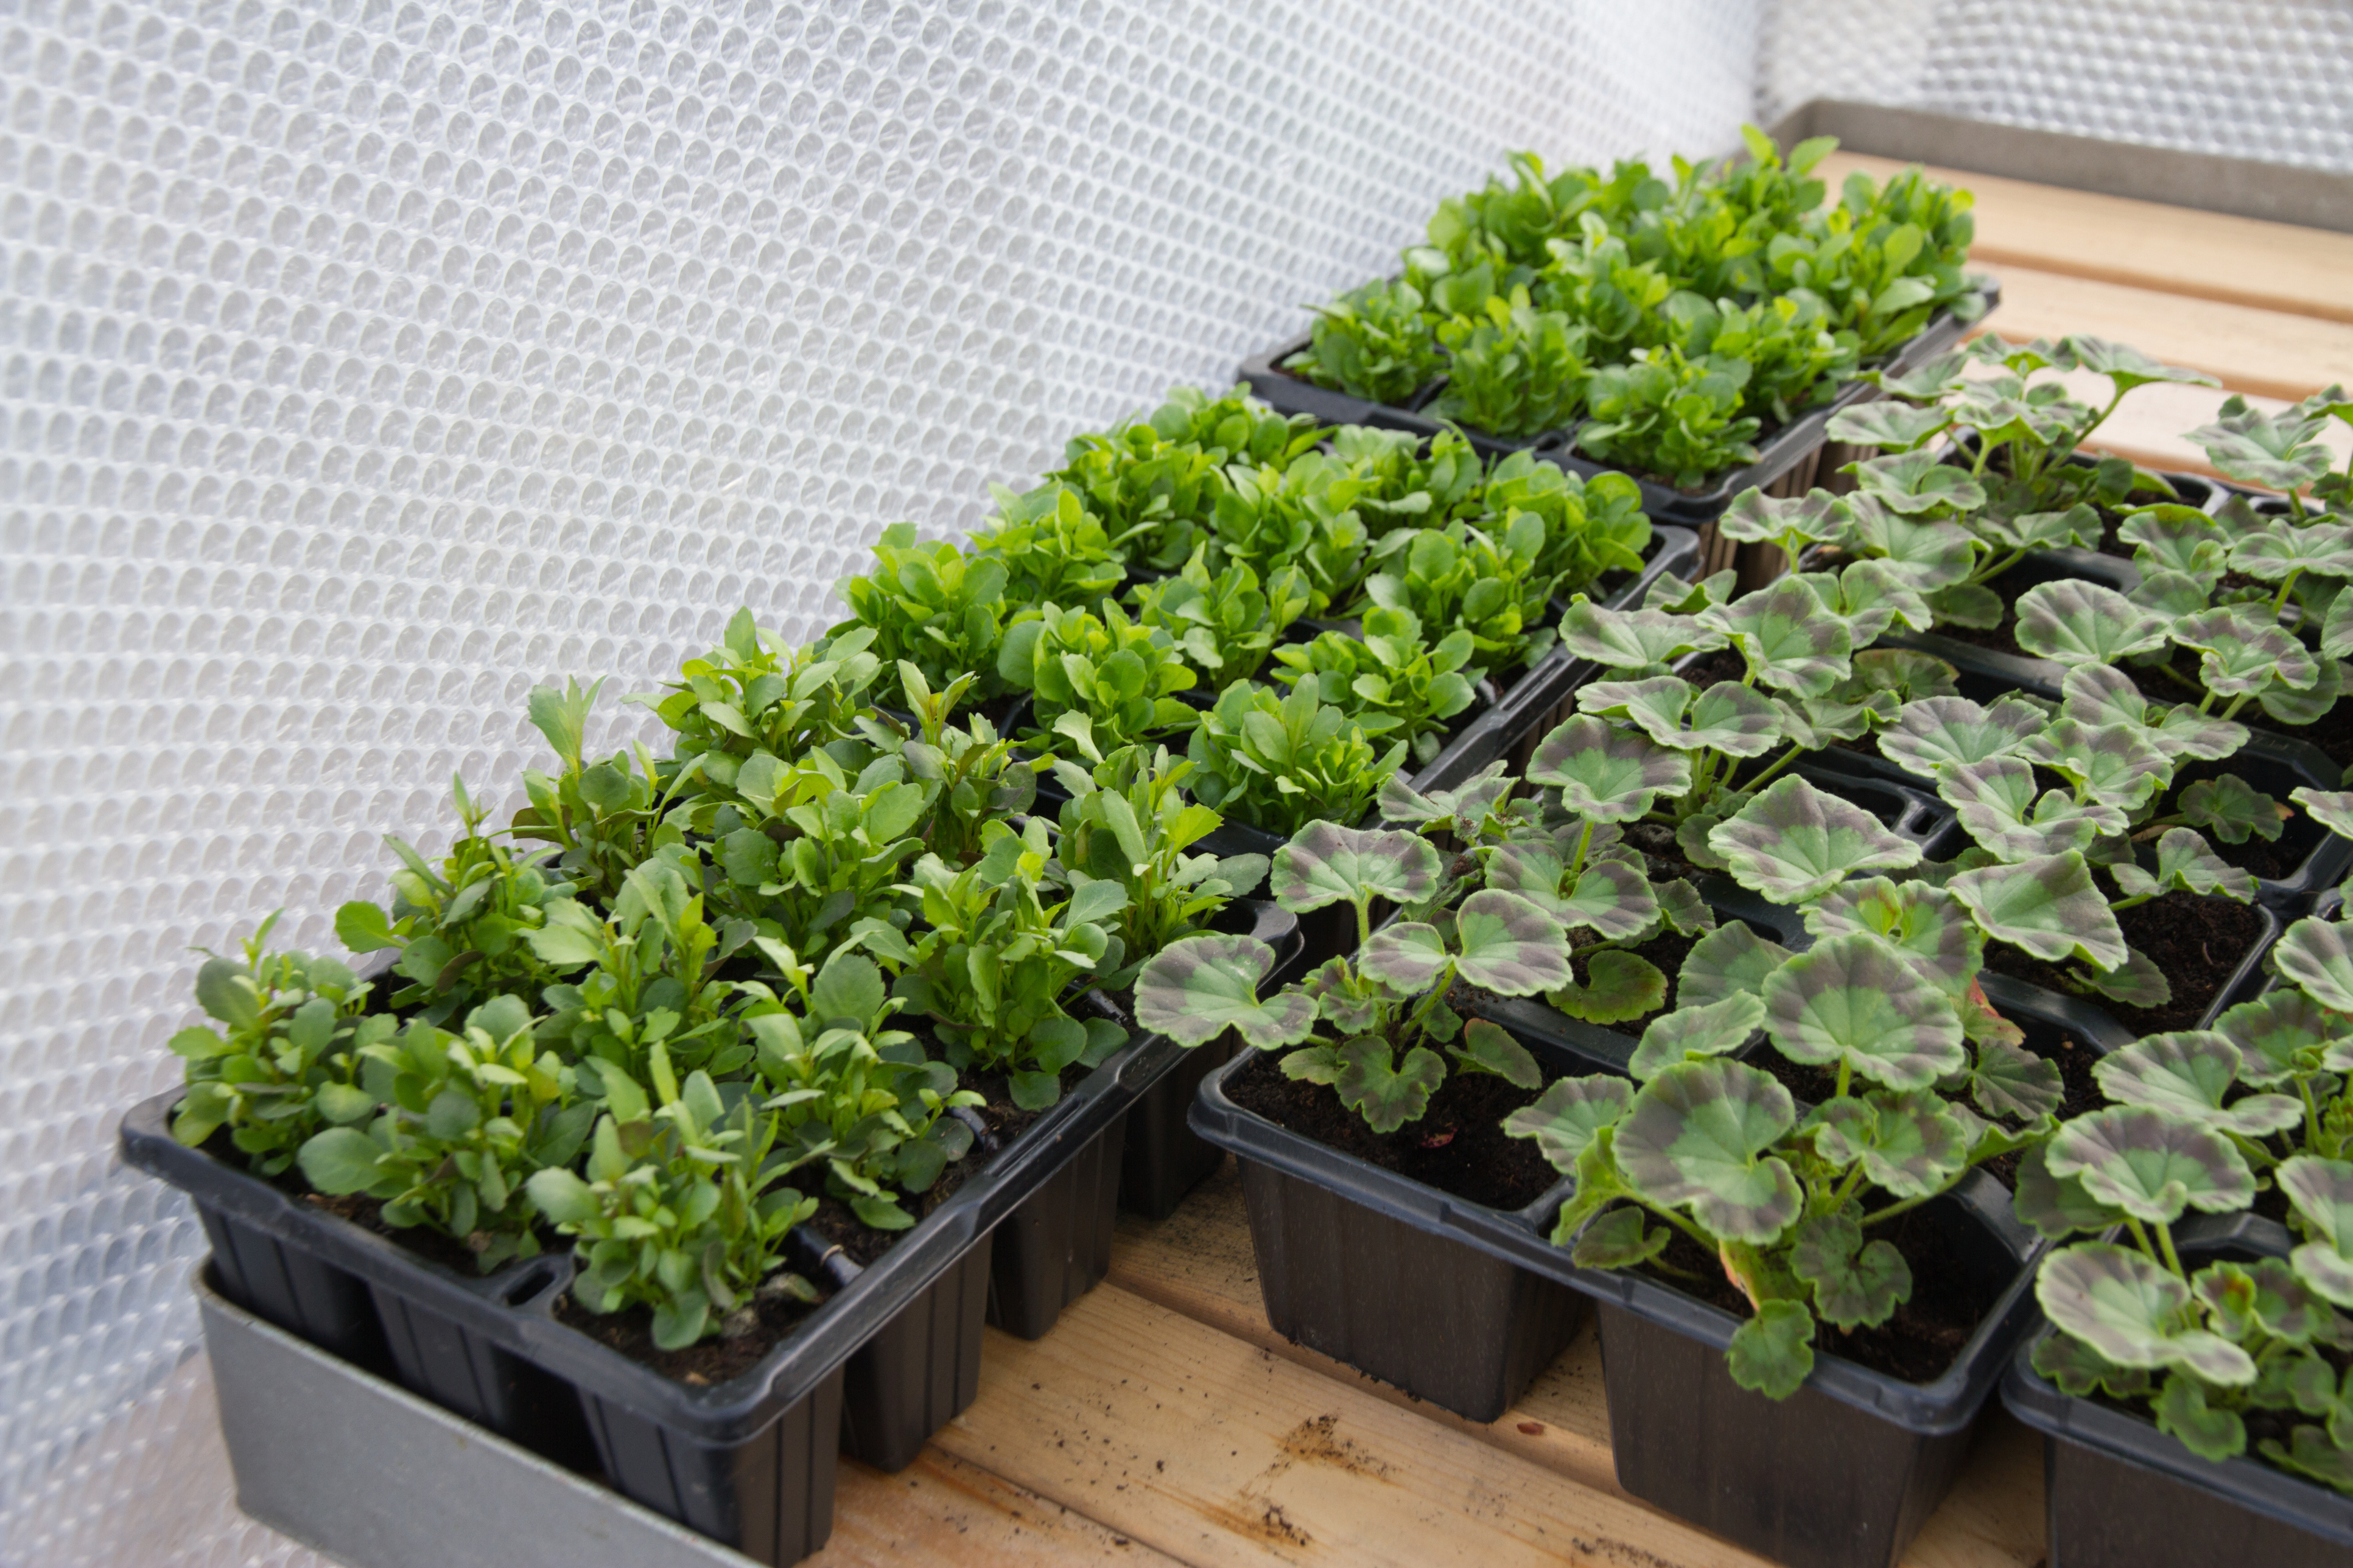 Using bubble wrap in the greenhouse (Thinkstock/PA)